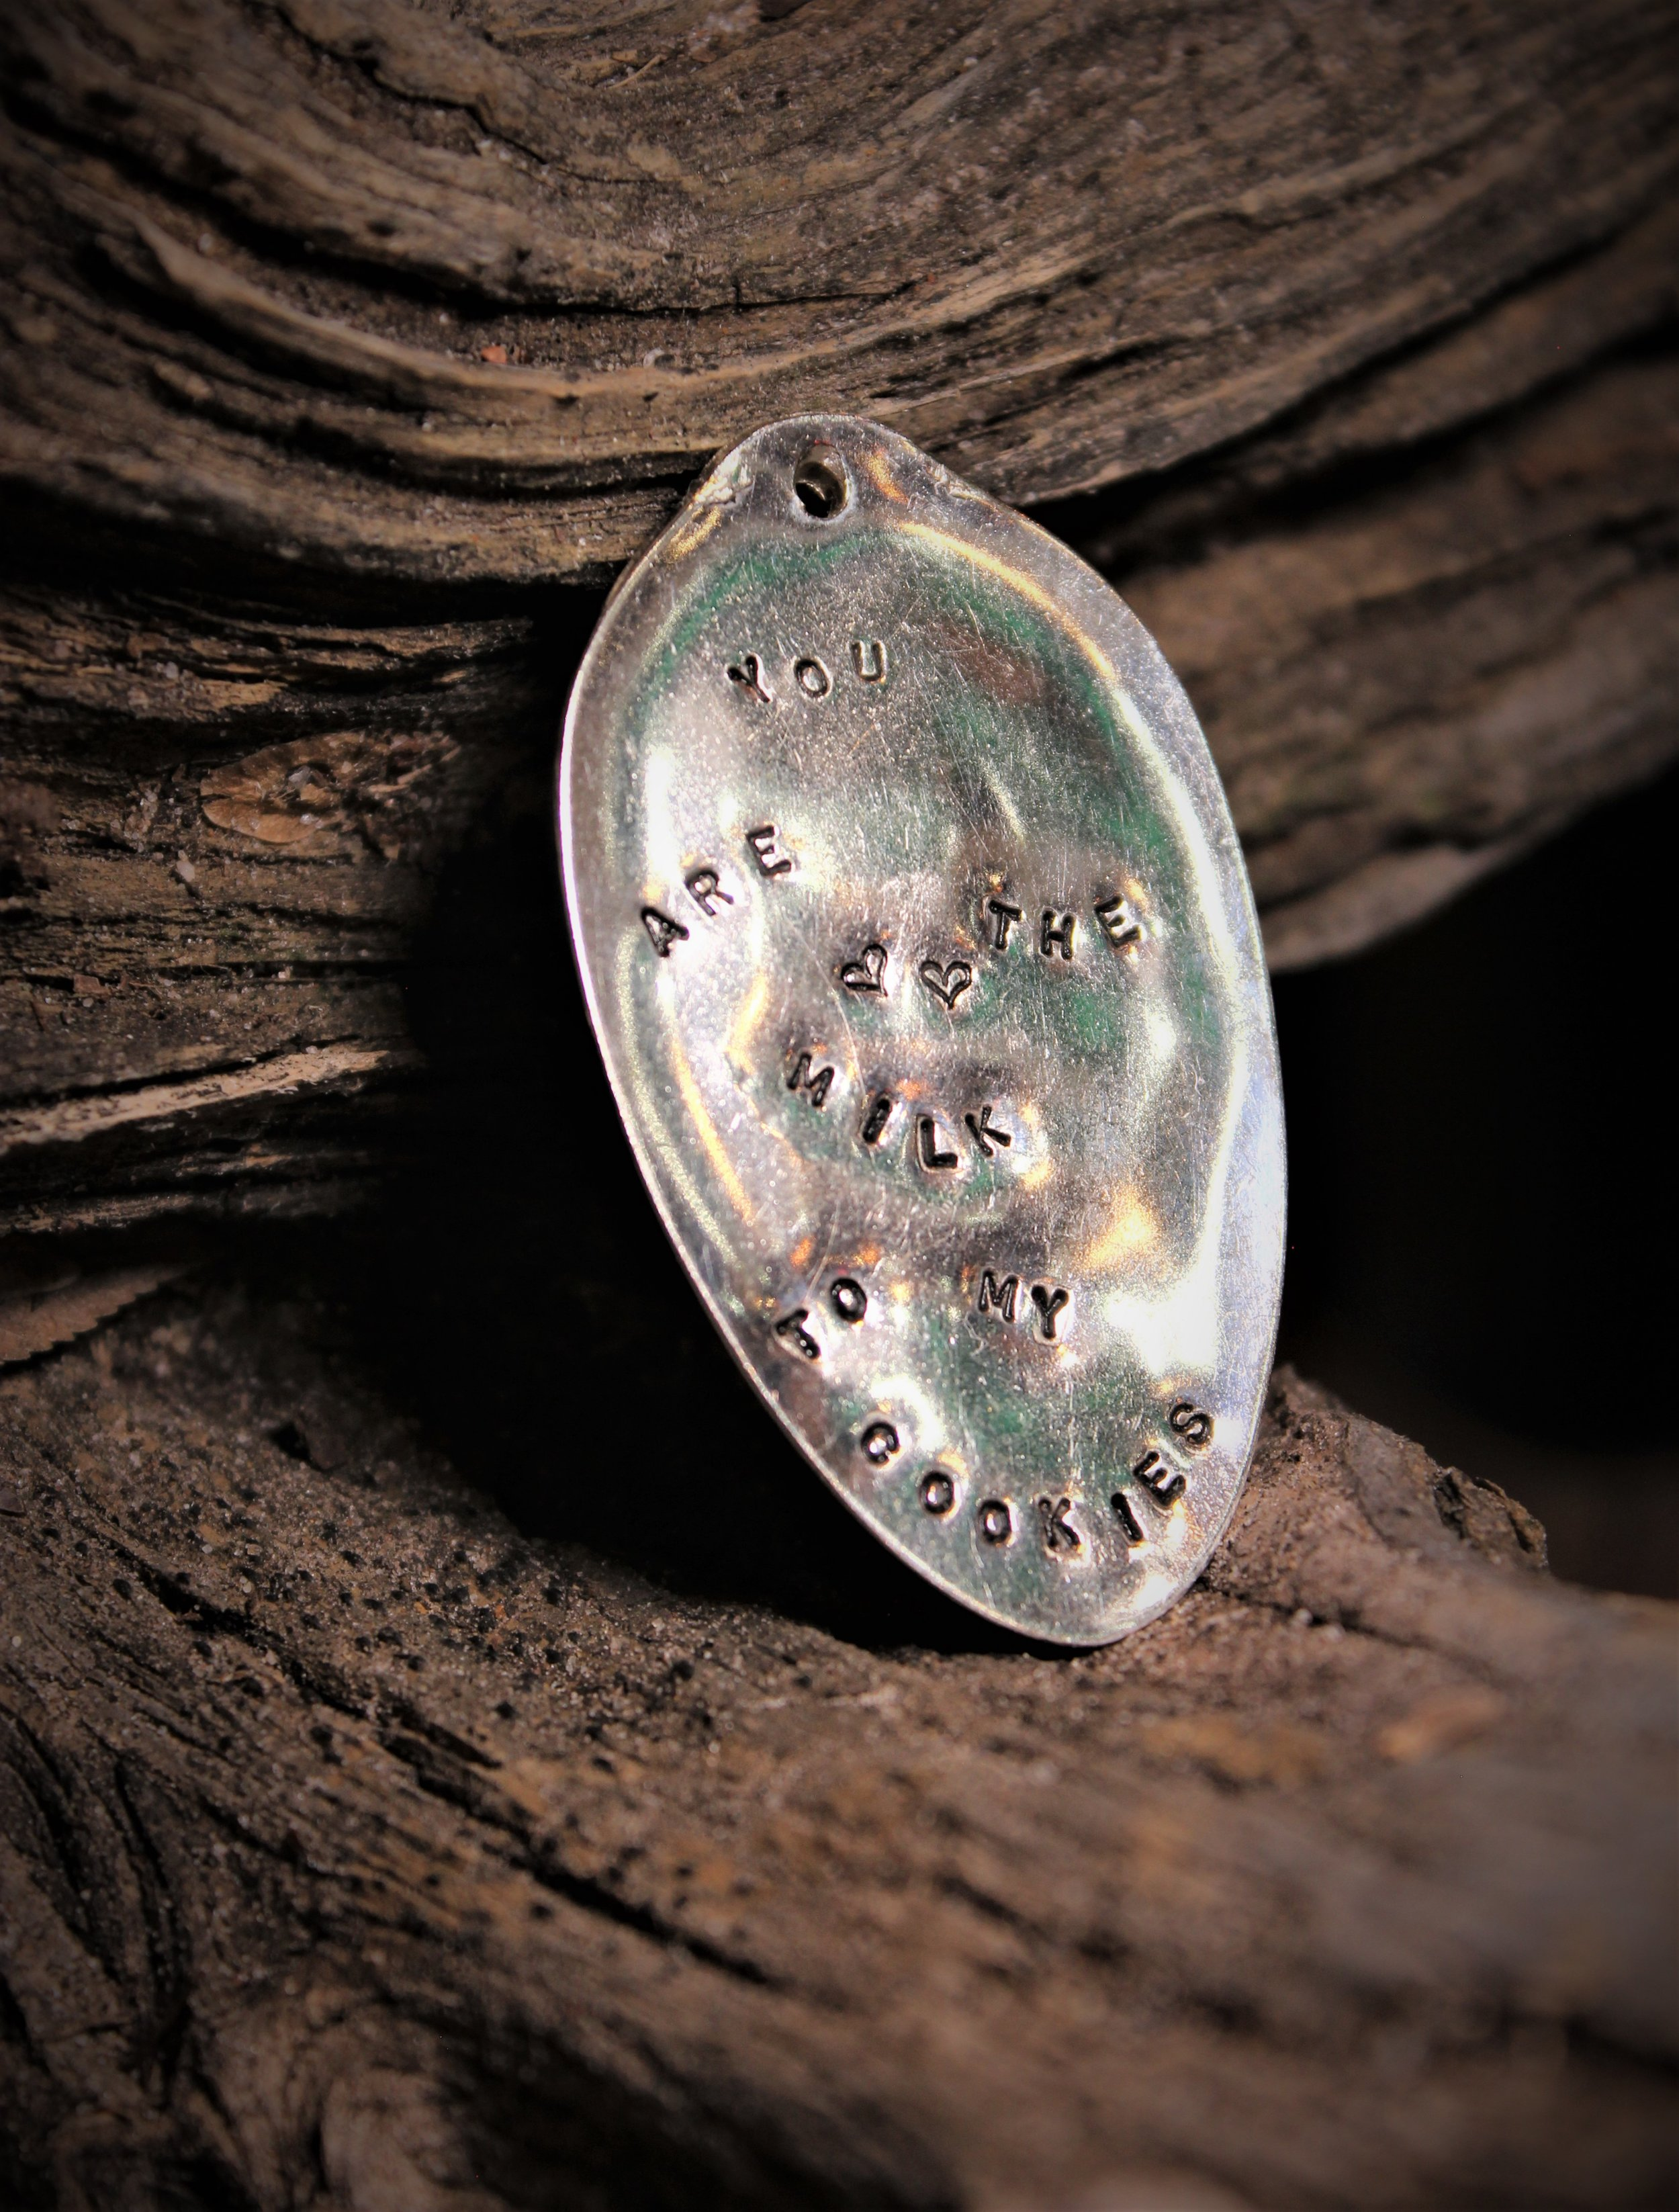 PENDANTS - Each piece has been hand-crafted from vintage silver plated silverware.These pendants can be hand stamped with a special customized quoteor saying creating a special gift for someone you love.